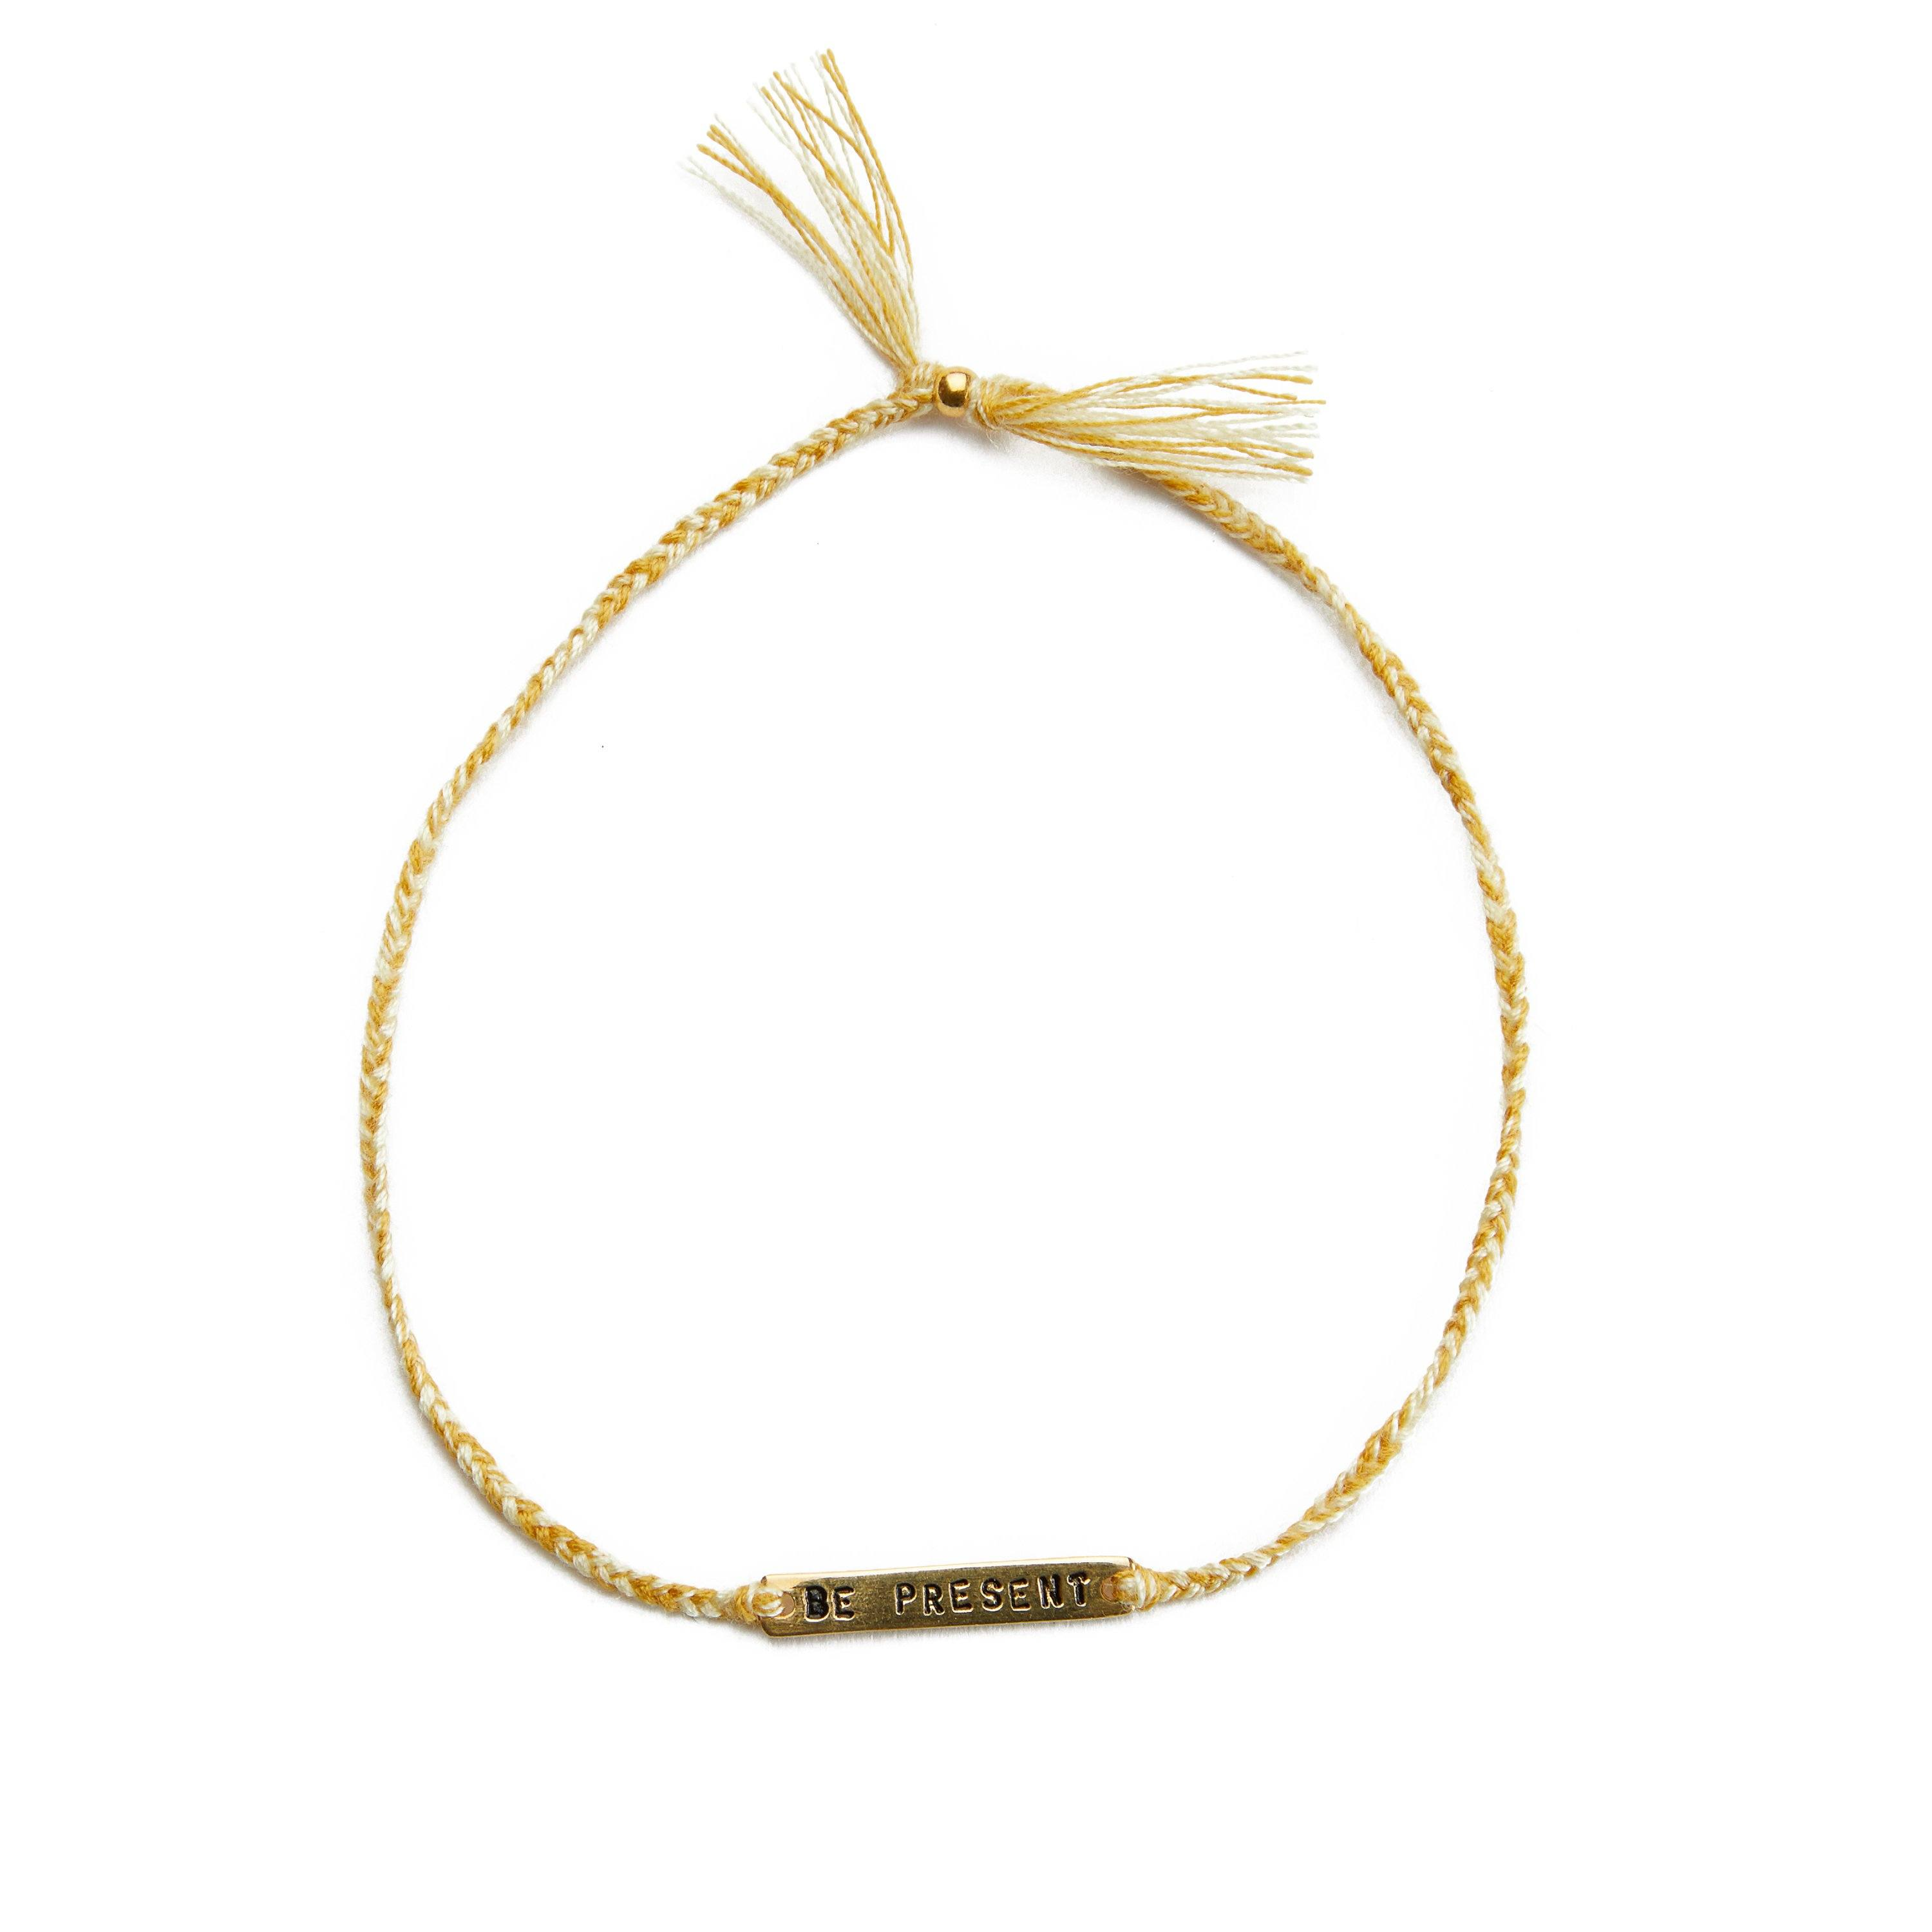 Be present yellow mix gold handmade bracelet from Santai.no